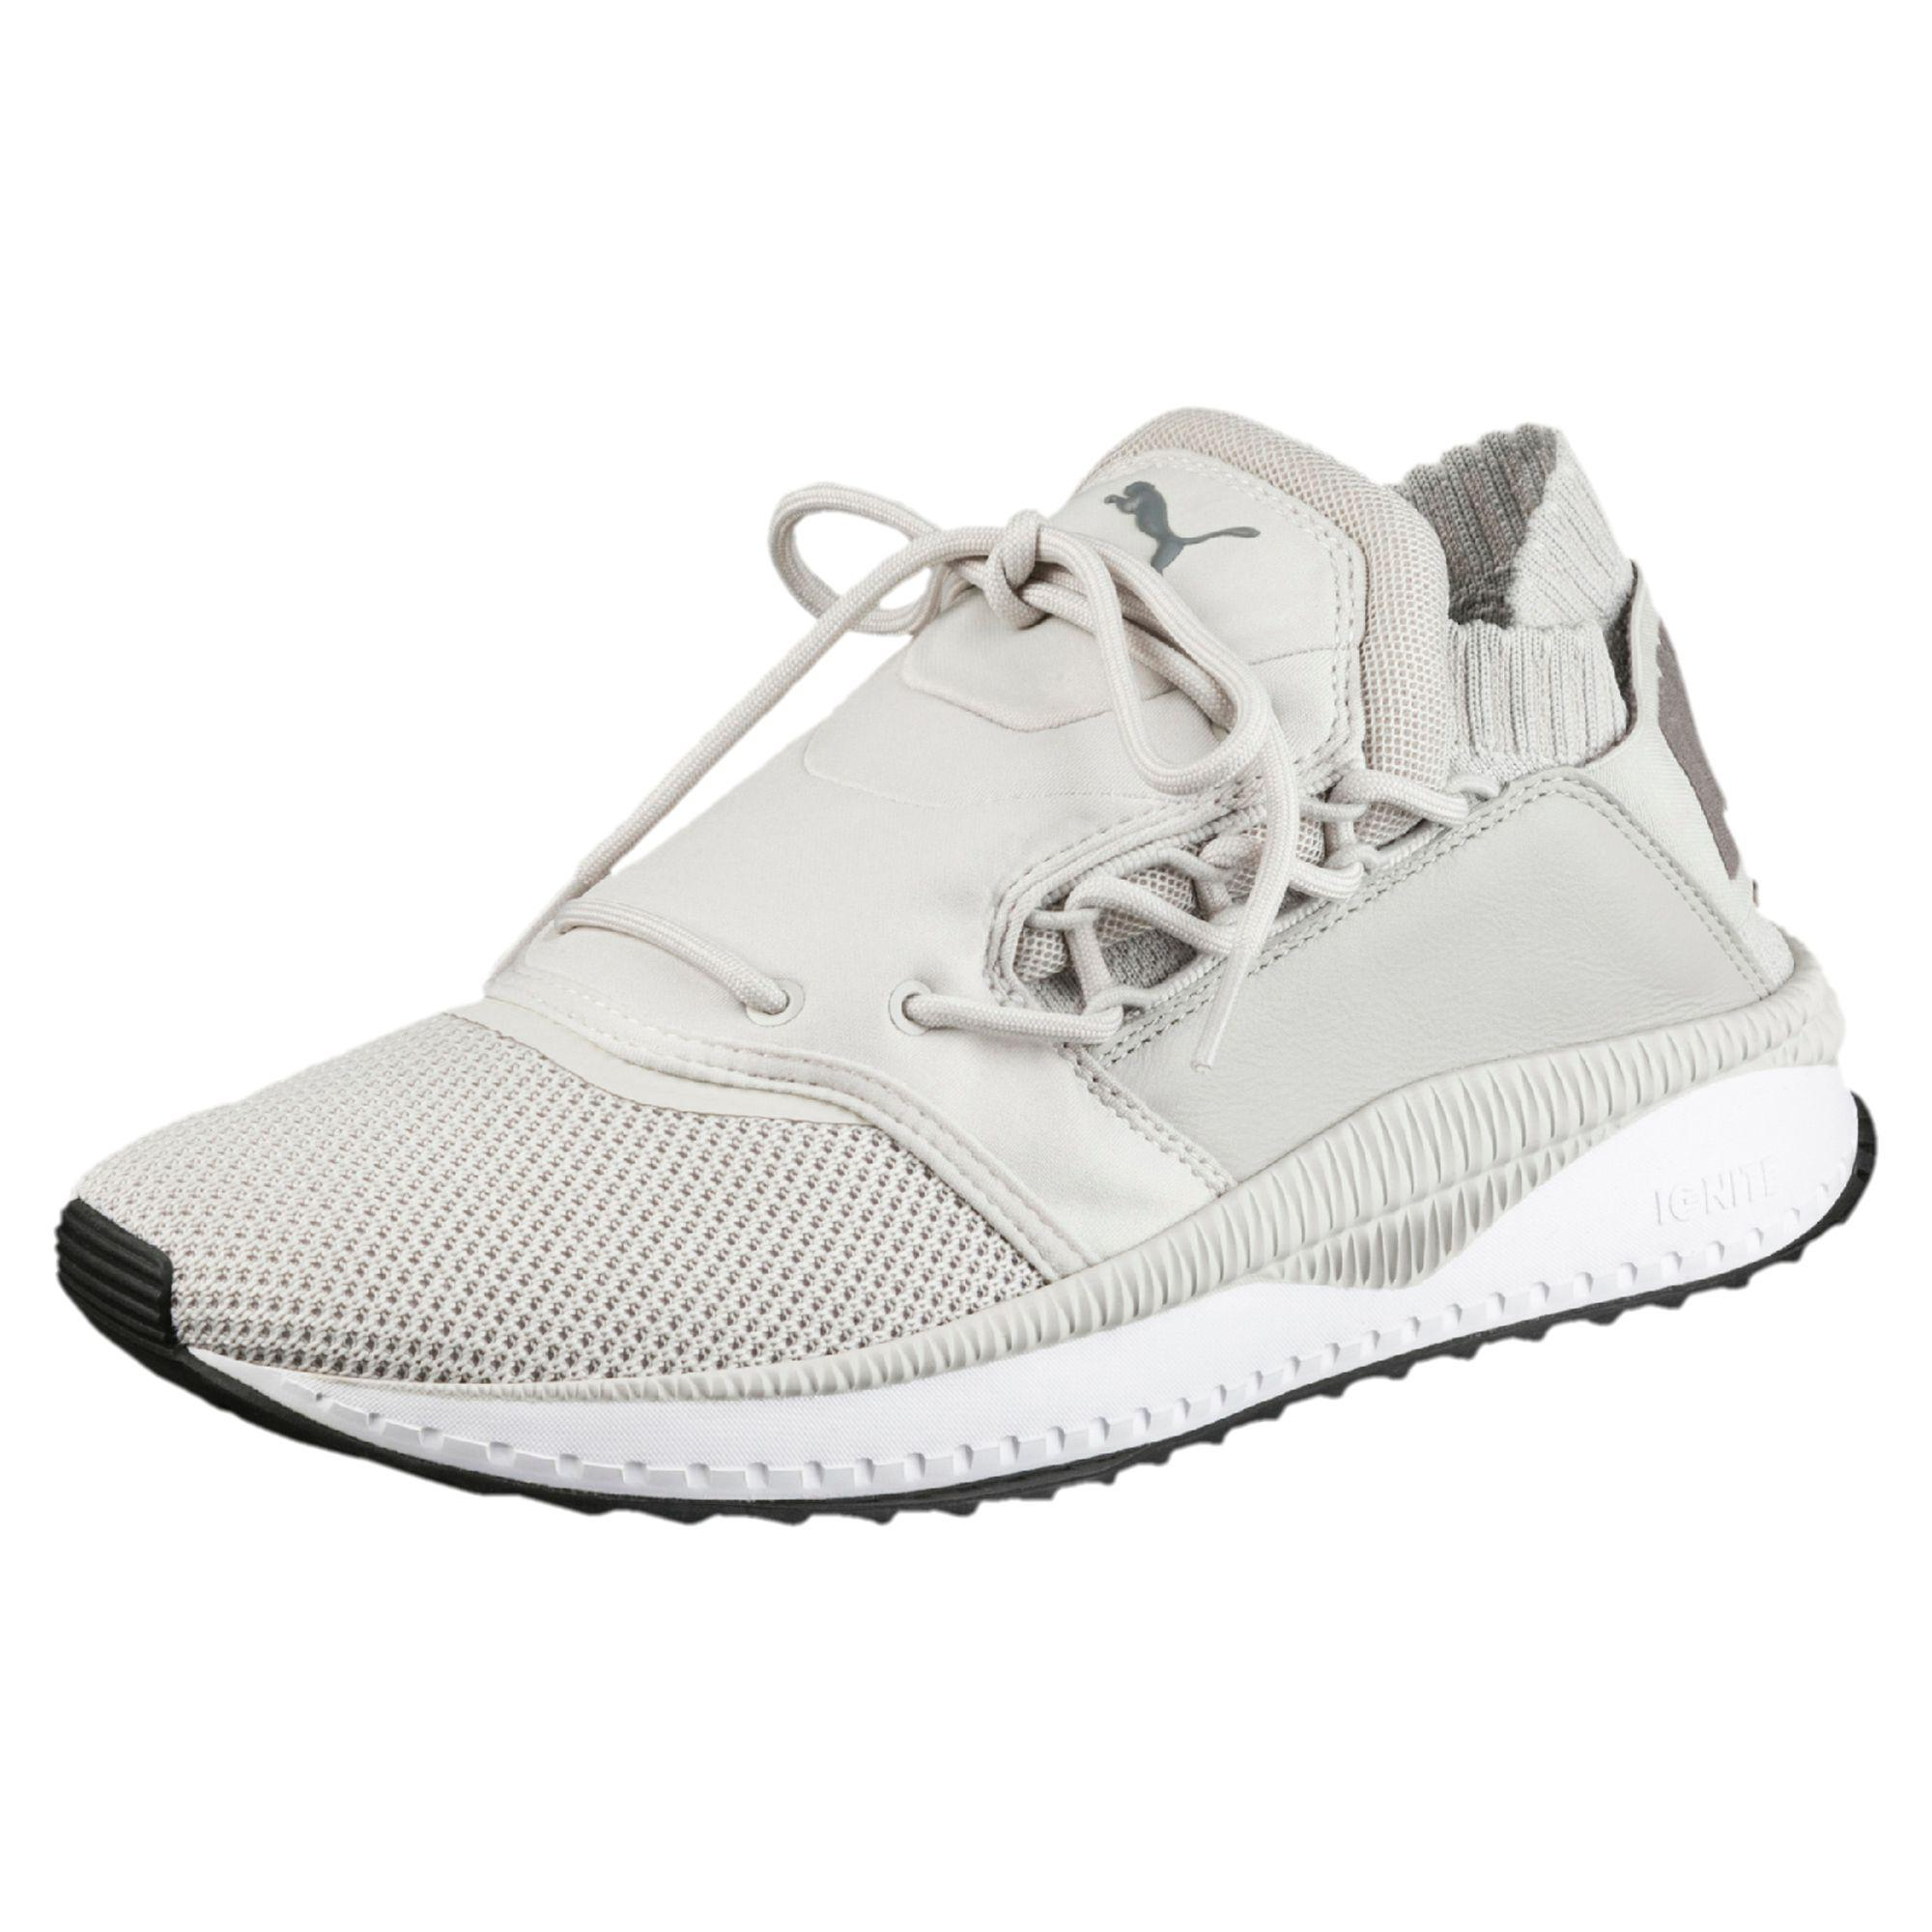 26b4909b29e4 super specials 7245a 55bab puma men white puma tsugi shinsei raw ...